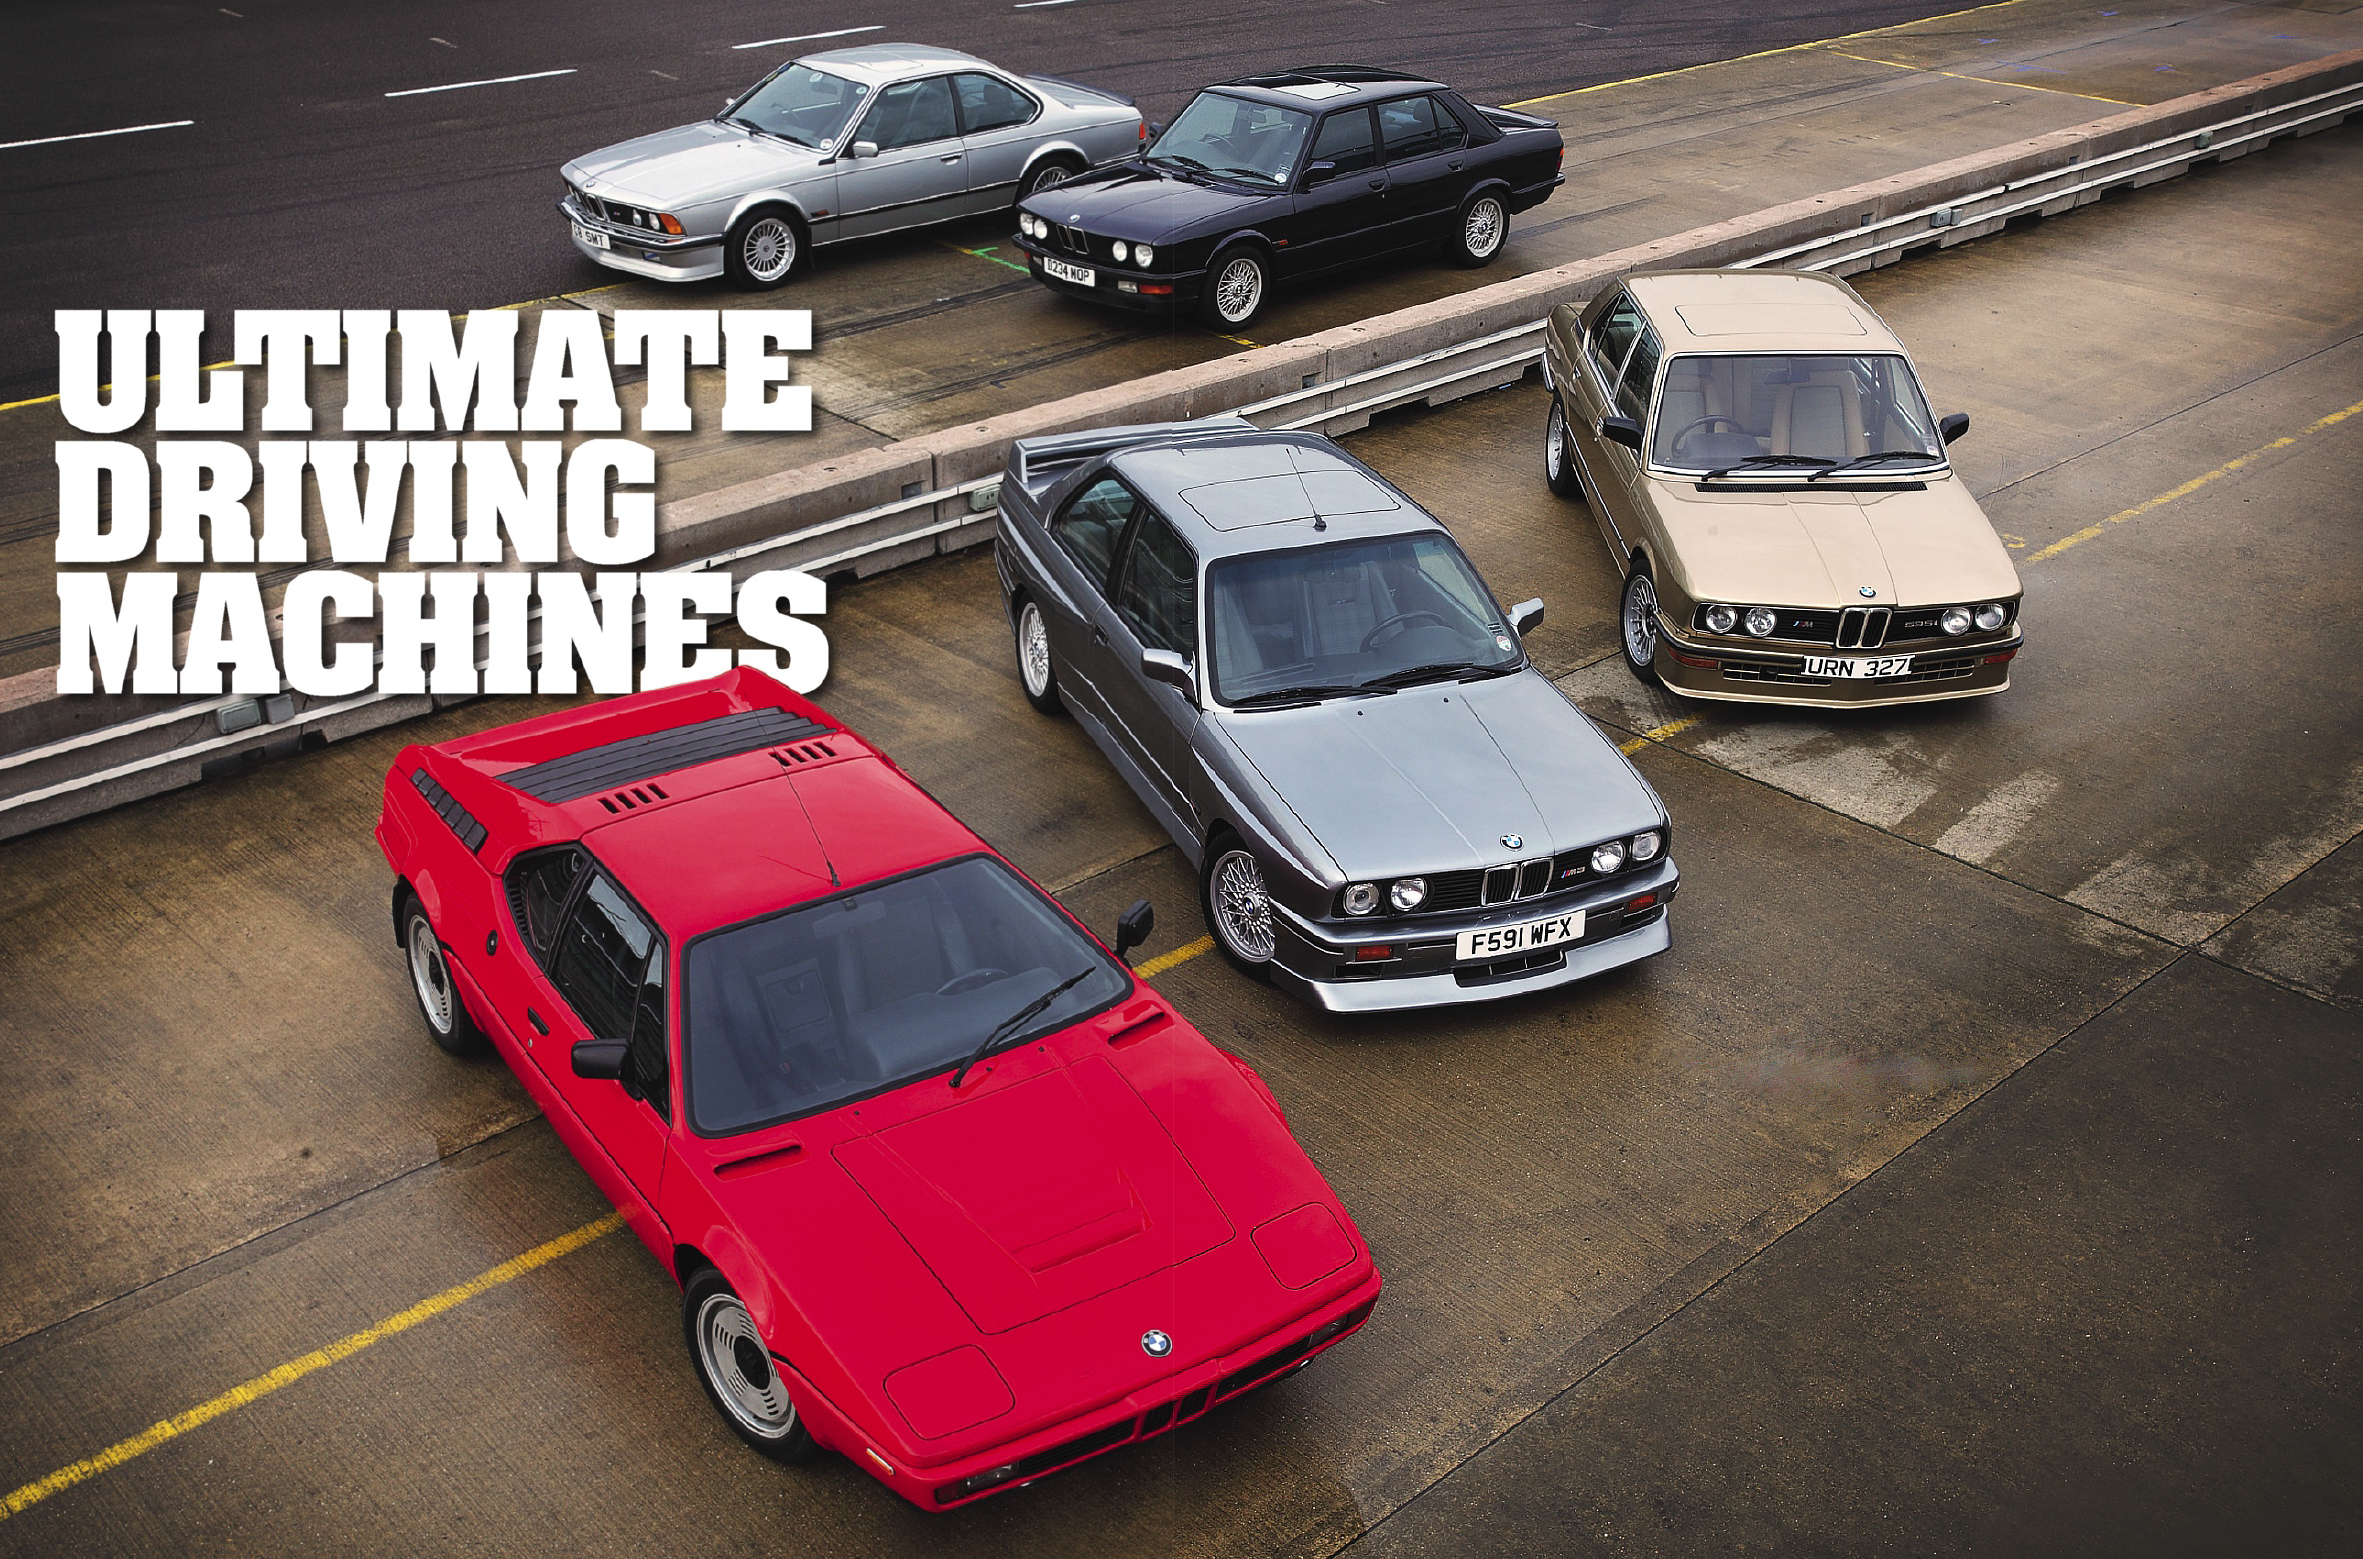 BMW E26 M1, E12 M535i, E28 M5, E24 M635CSi and E30 M3 EVO II